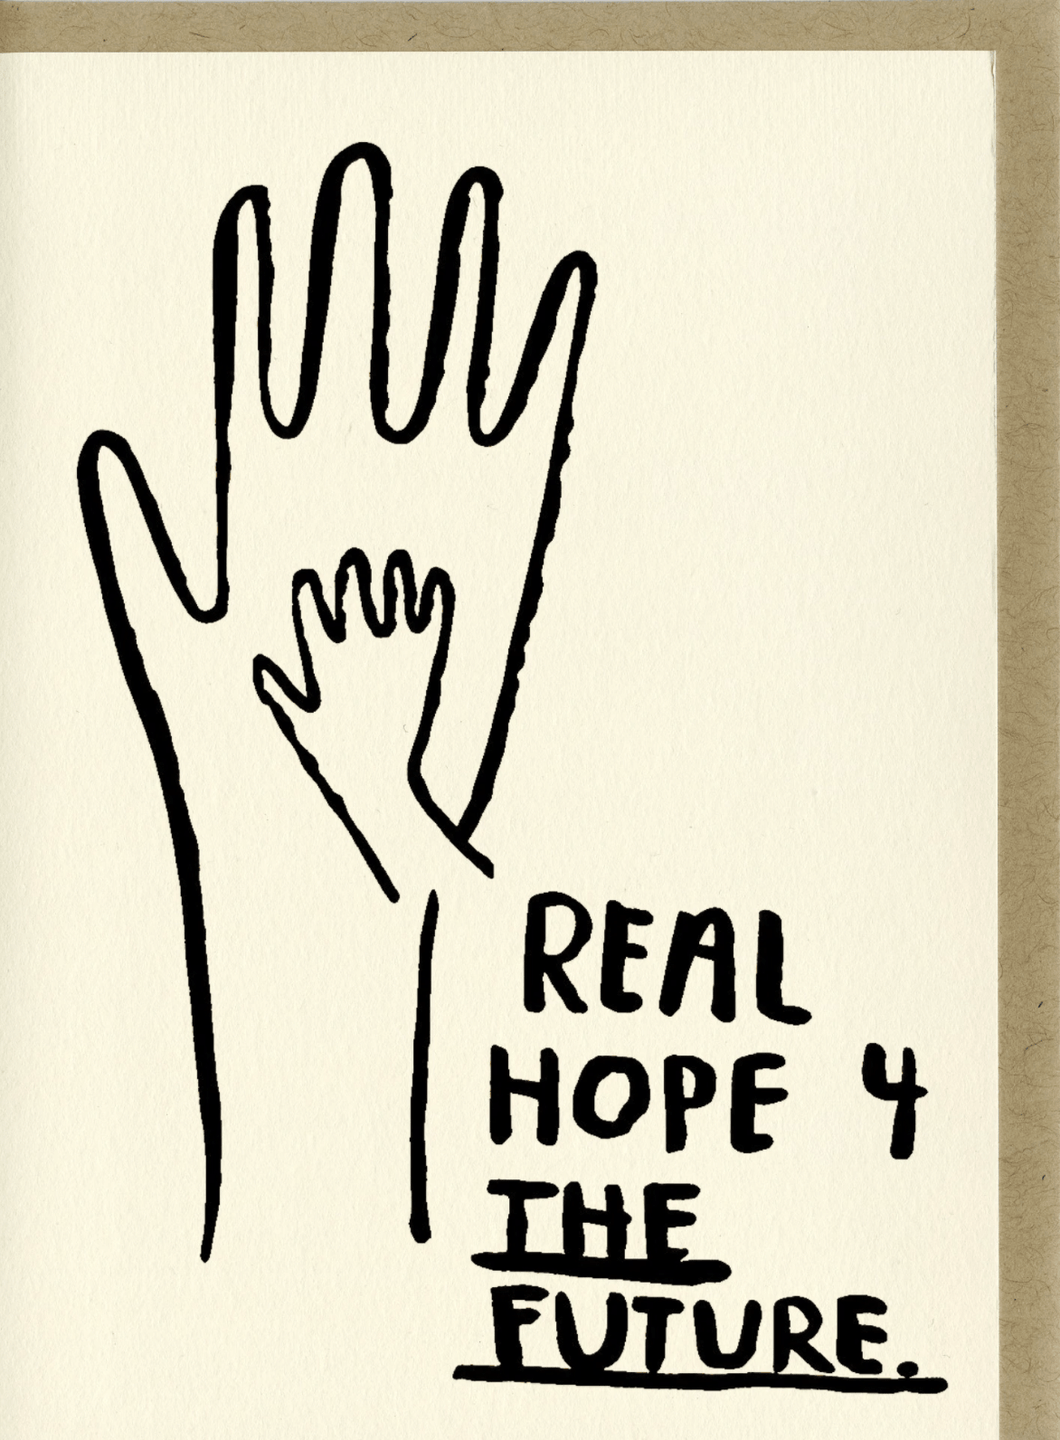 Real Hope For the Future - Adele Gilani Art Gallery